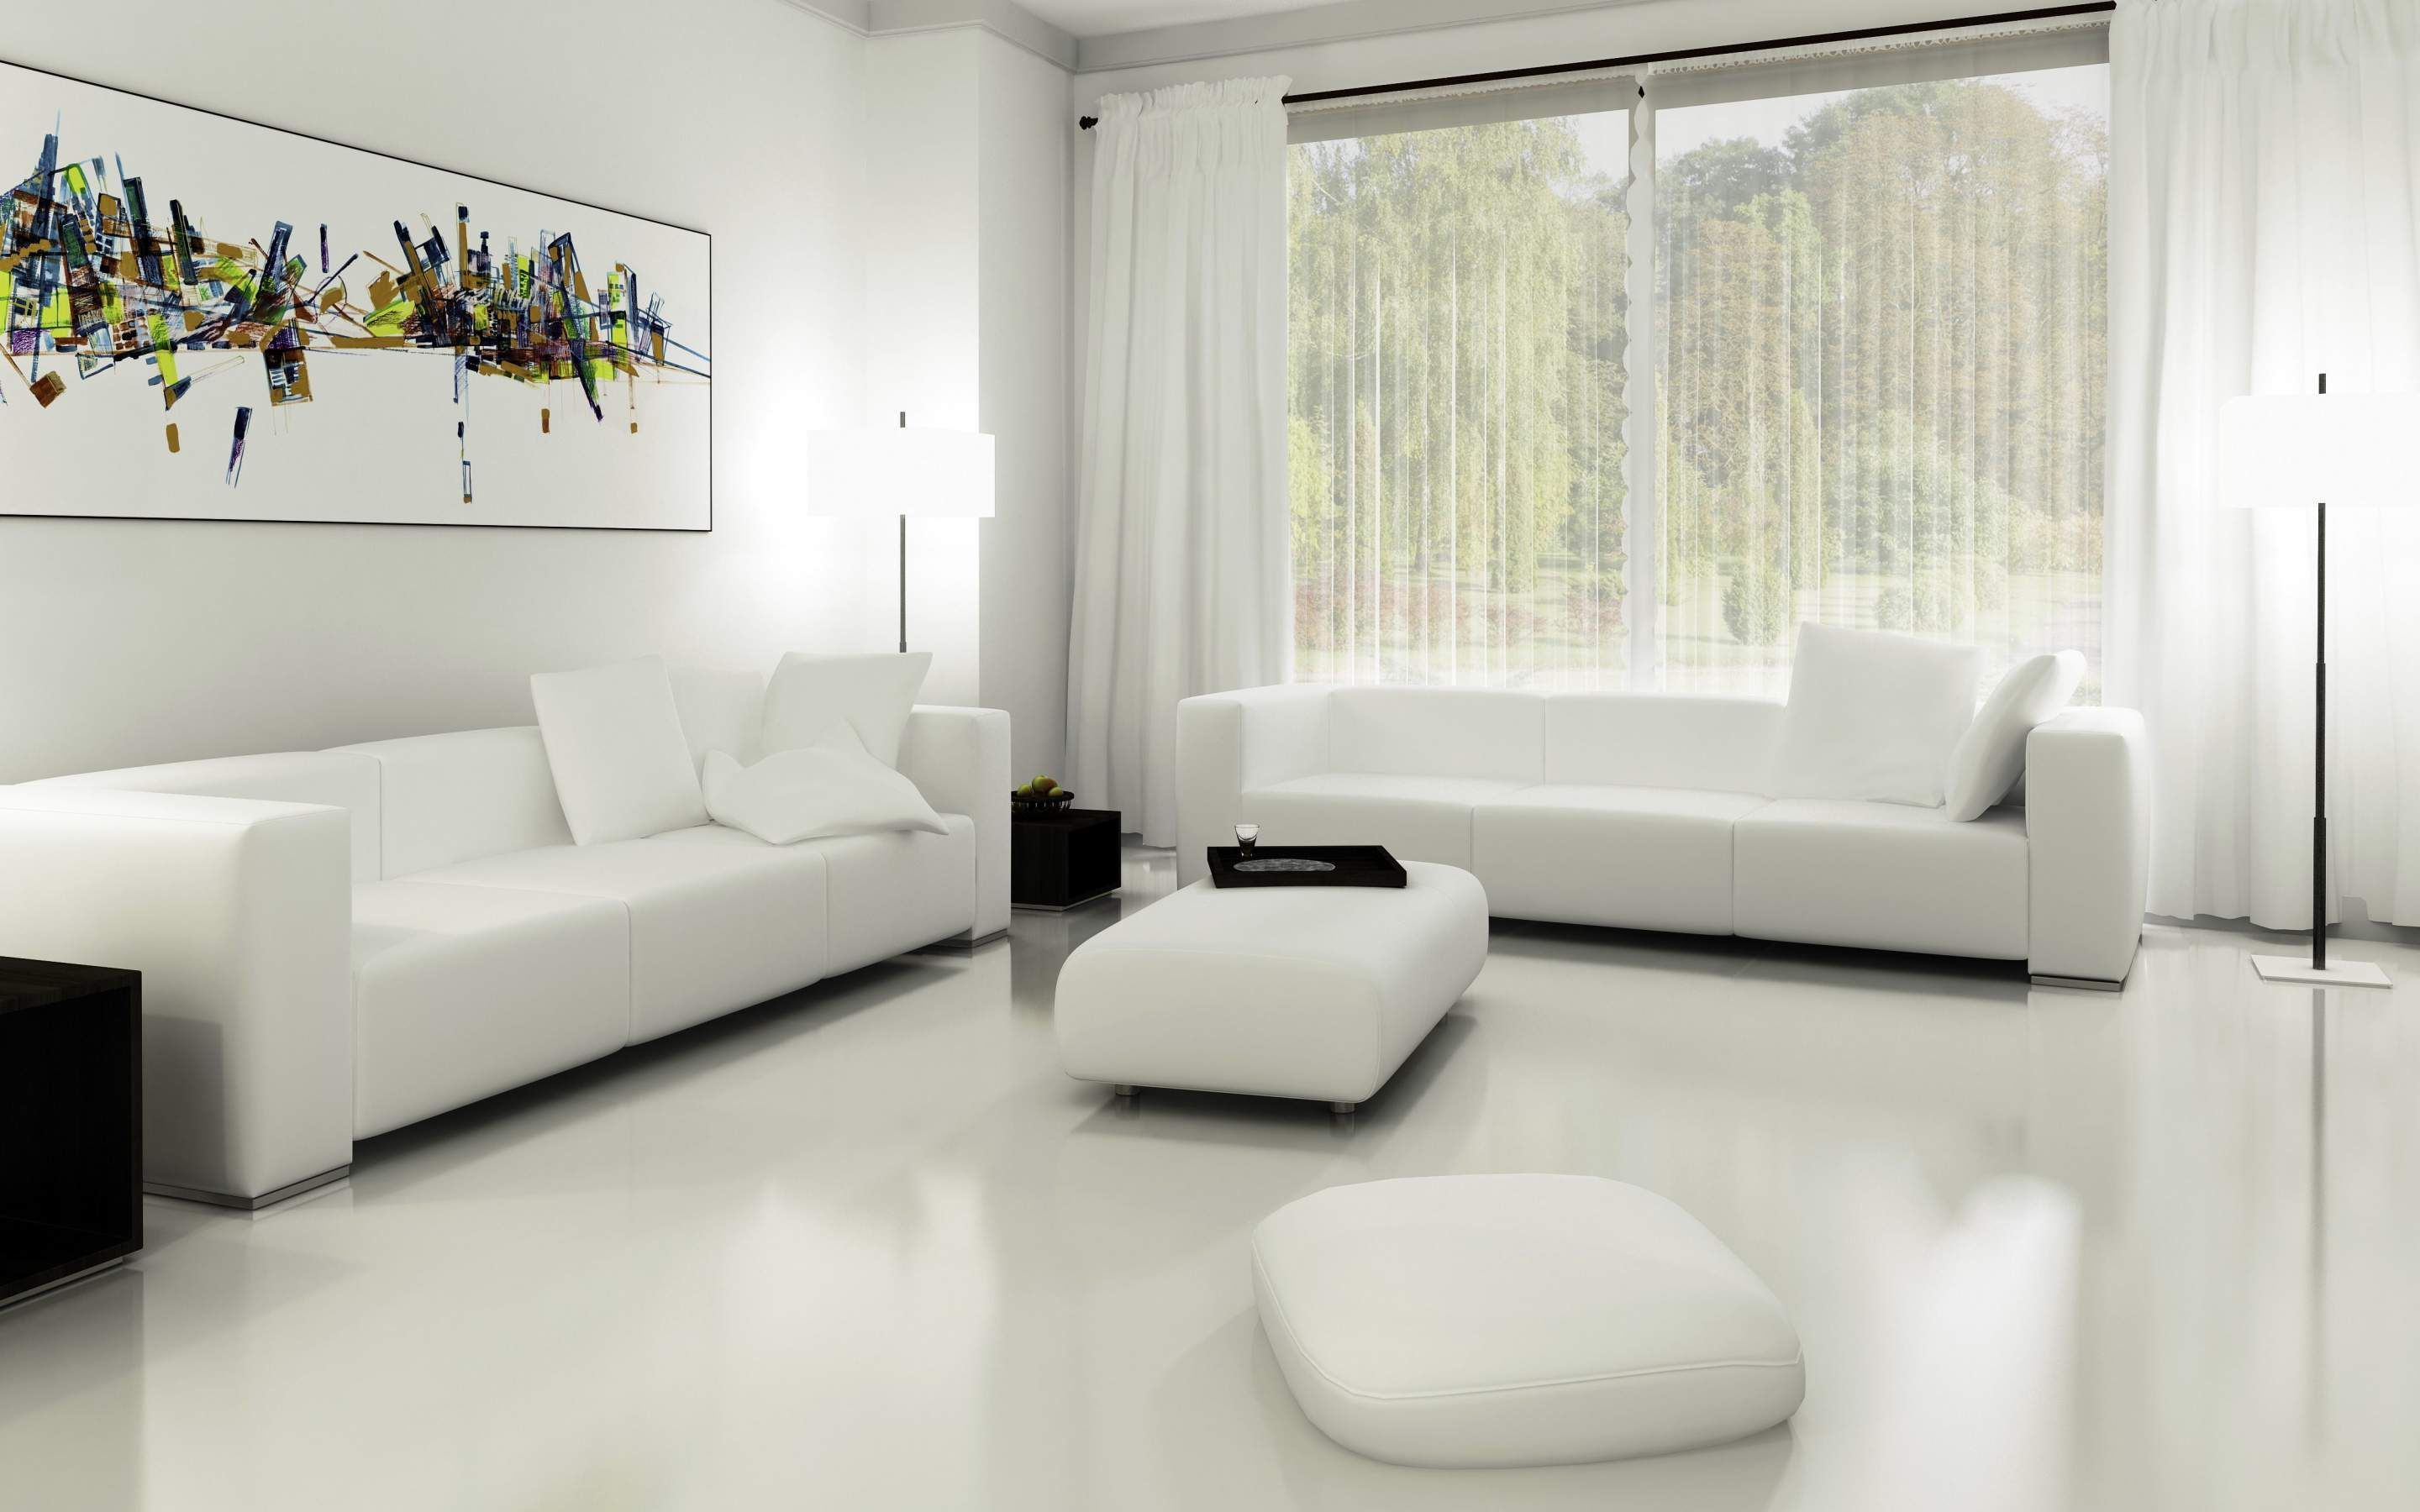 Minimalist Living Room Ideas Inspiration To Make The Most Of Your Space White Living Roomswhite Interiorsall